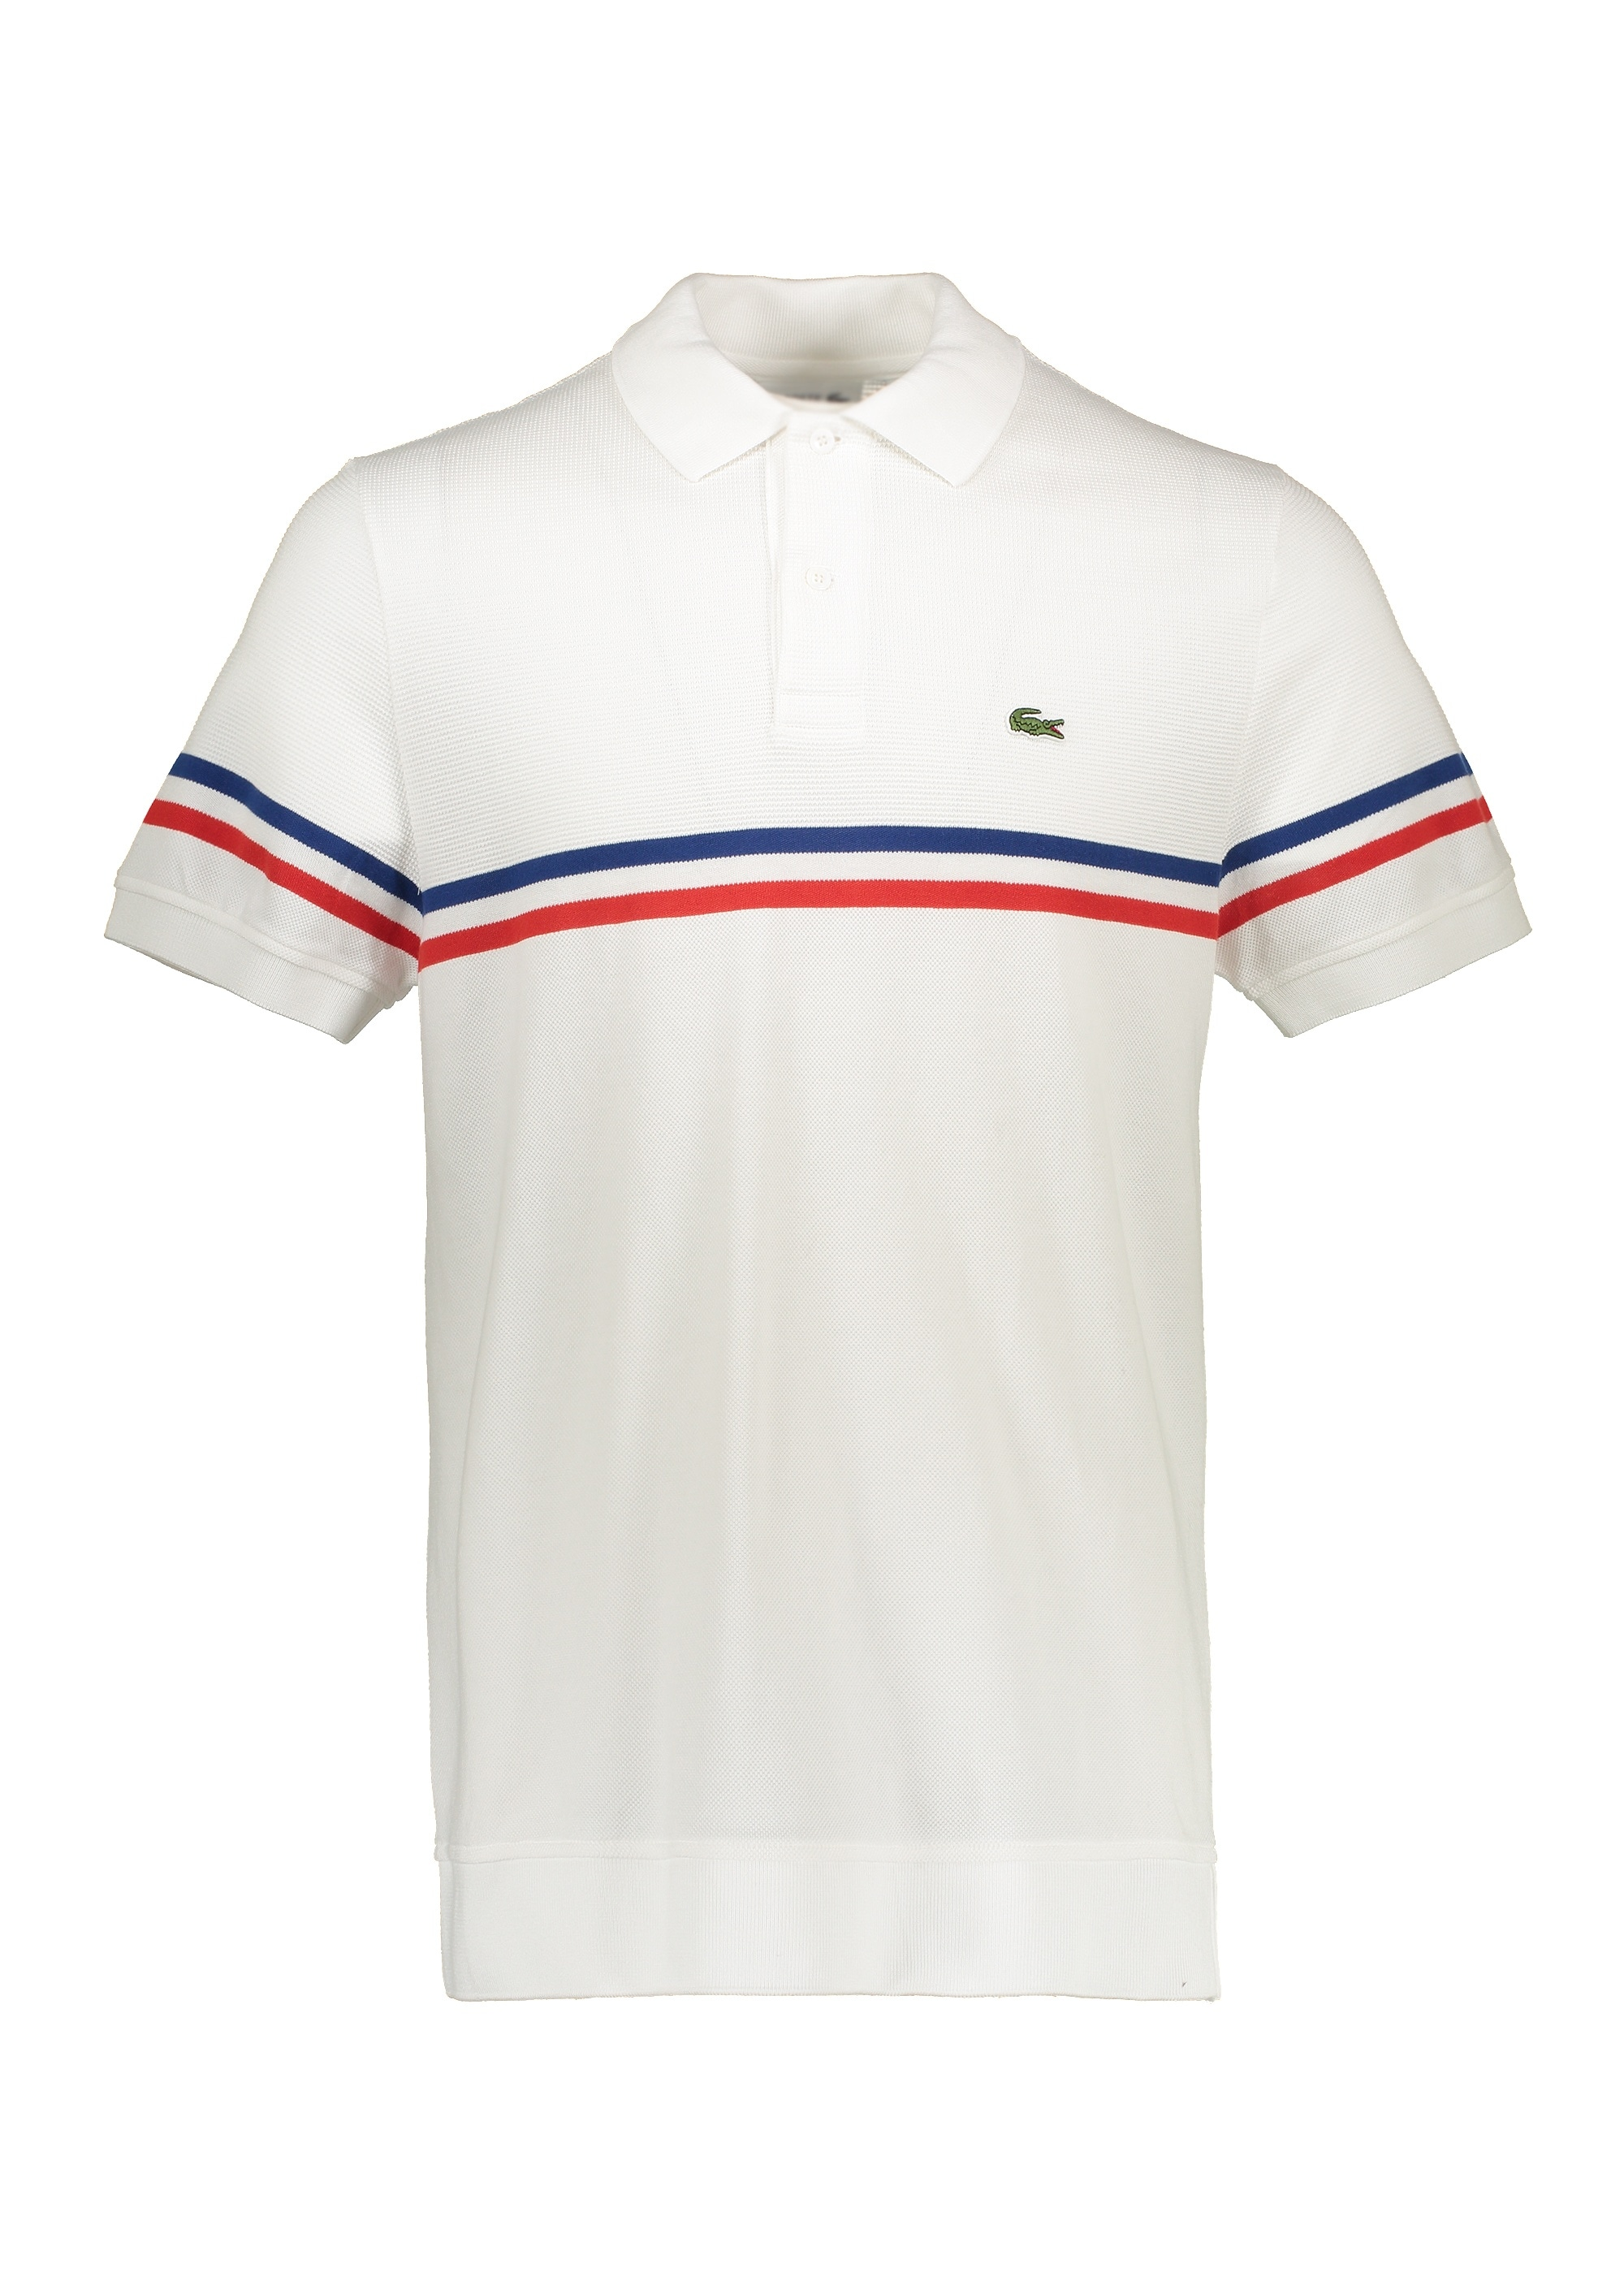 c7f8f4ff6c Lacoste Knit Stripe Polo - White / Salvia - Polo Shirts from Triads UK